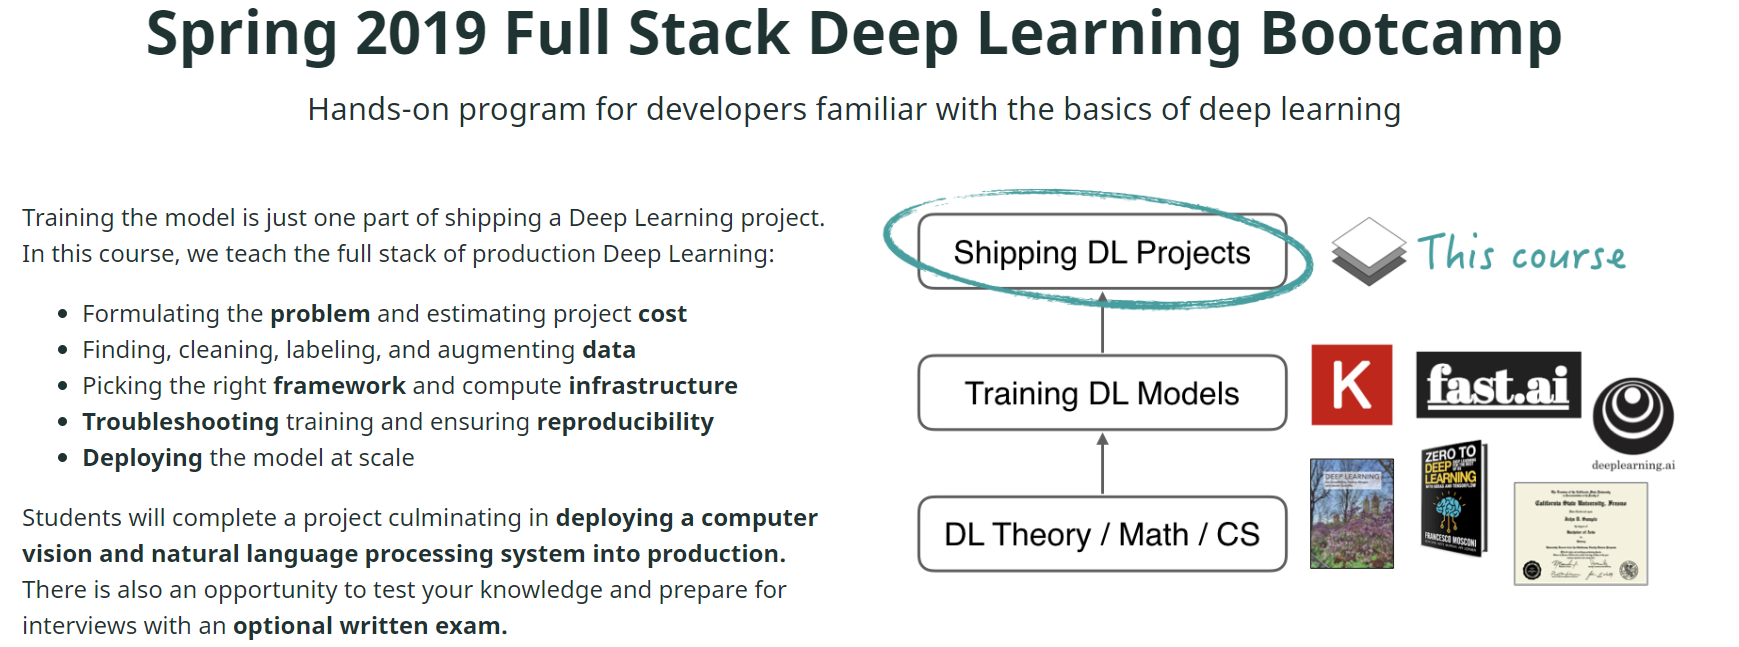 Full Stack Deep Learning